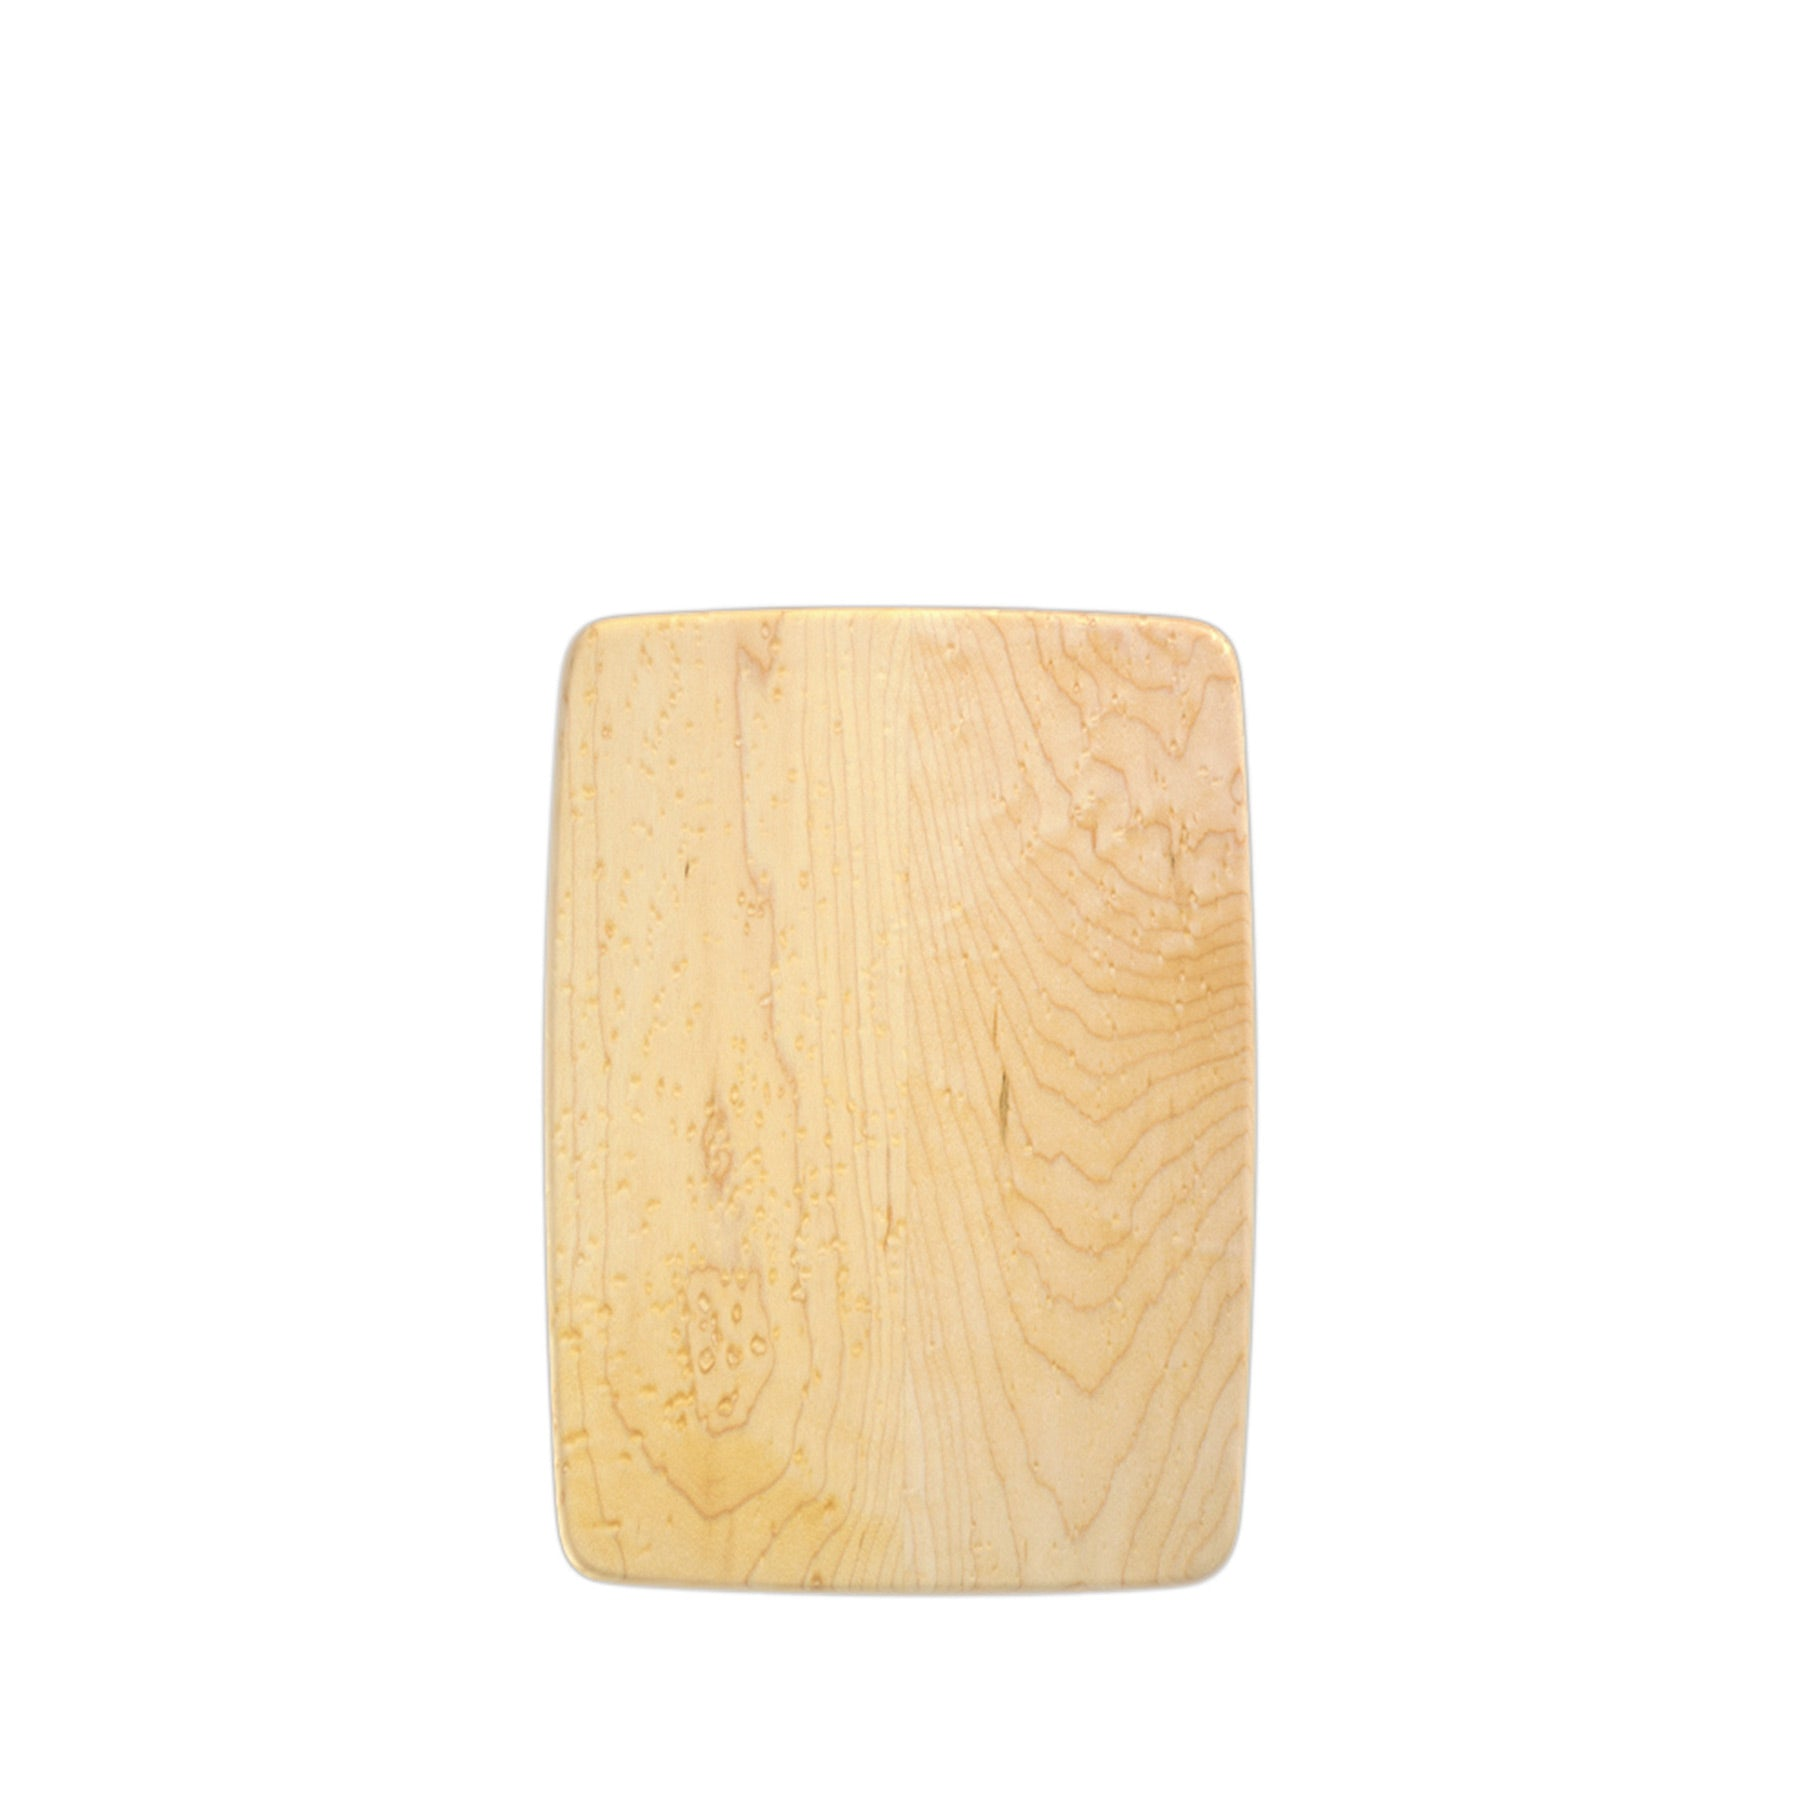 Maple Cutting Board 7 x 9.5